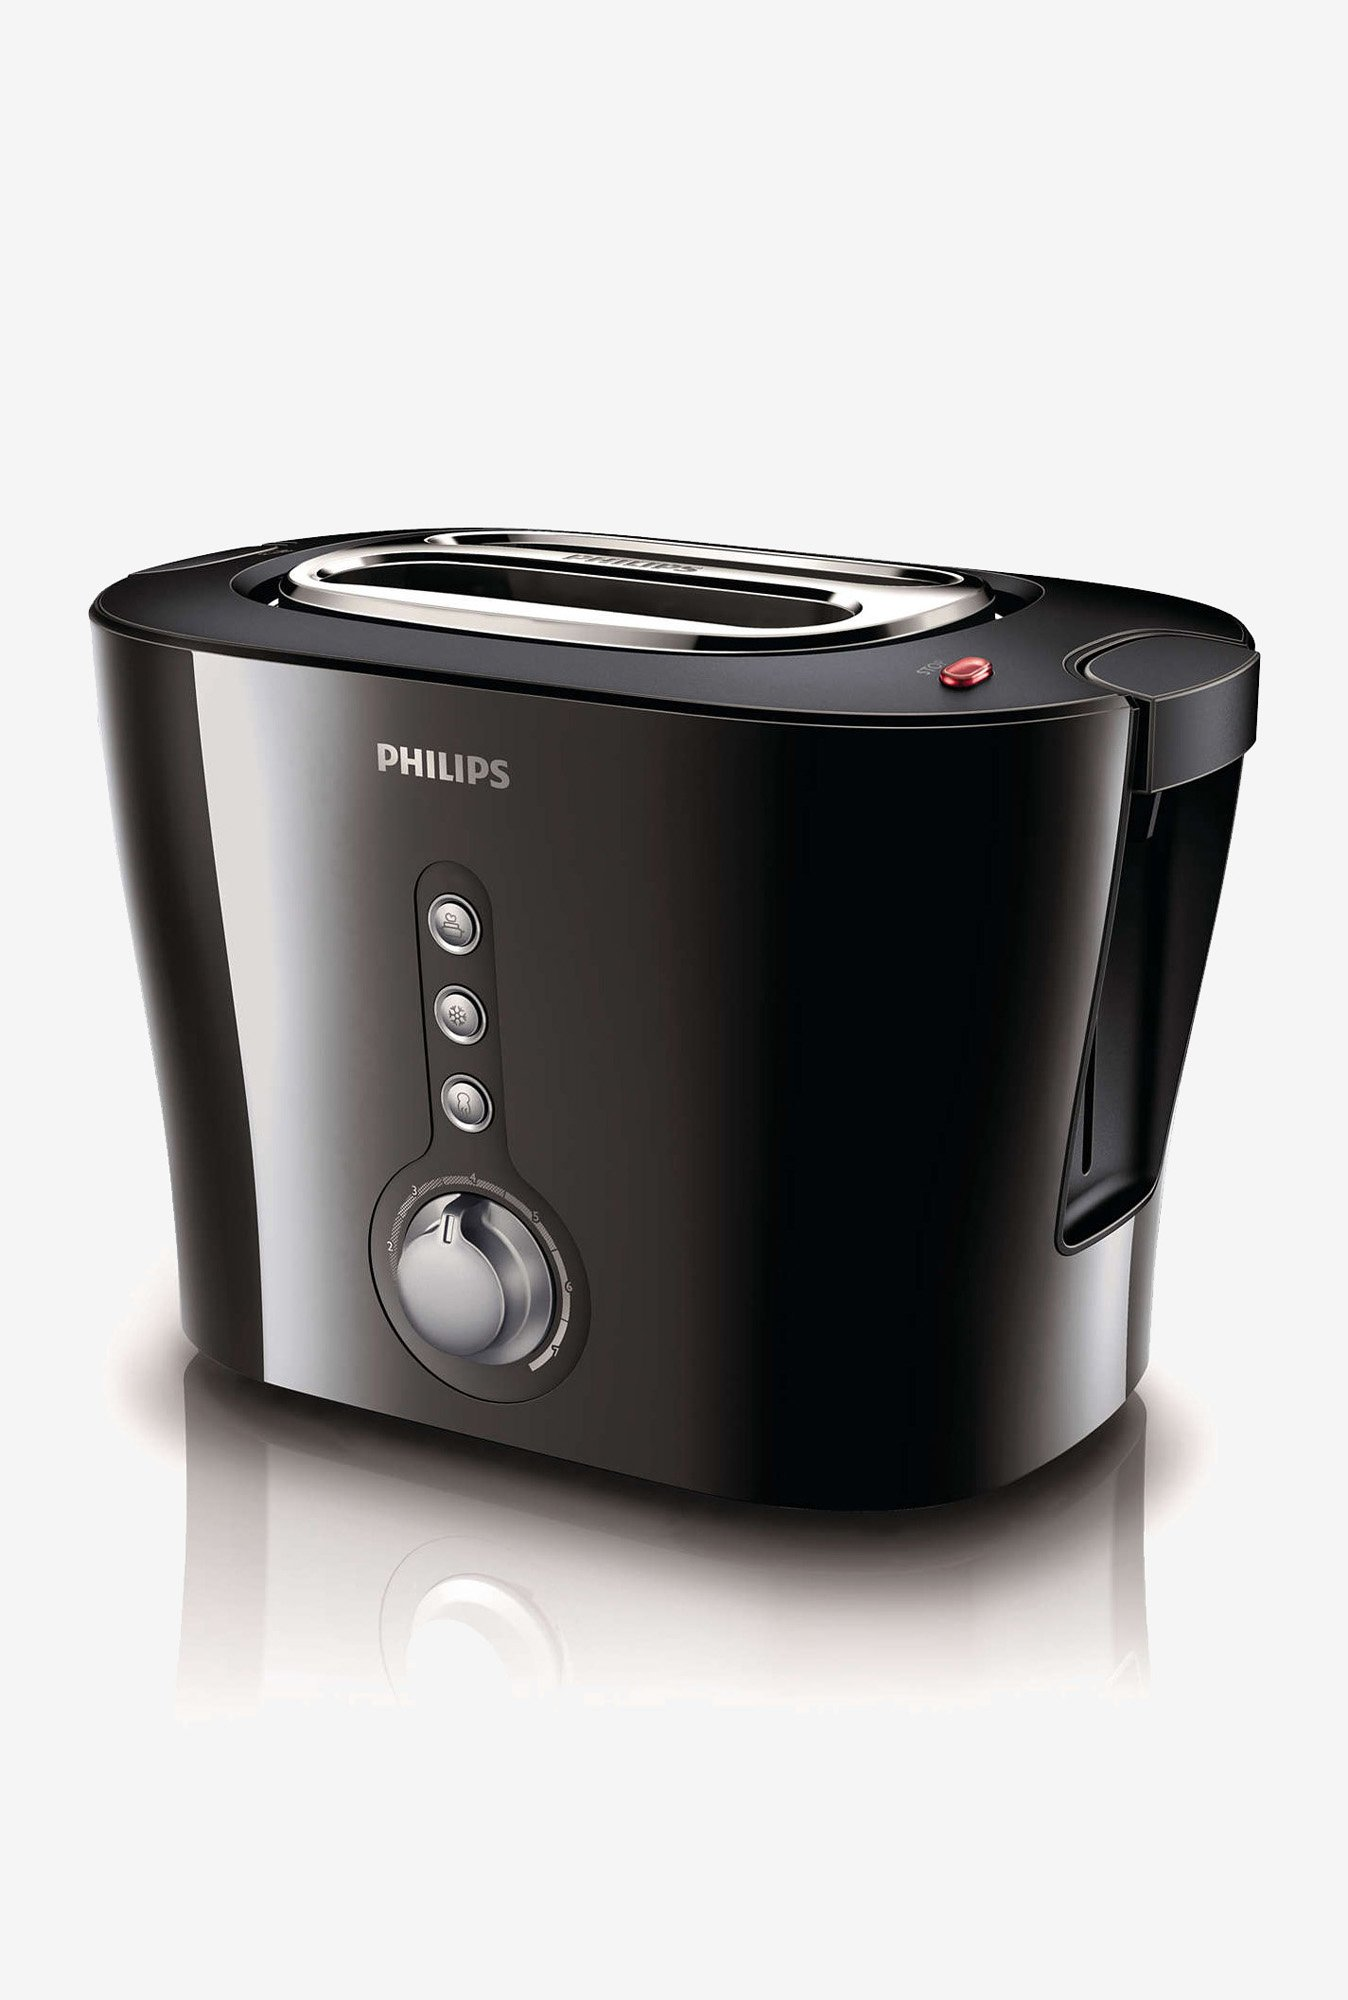 Philips HD2630/20 Pop-up Toaster Black